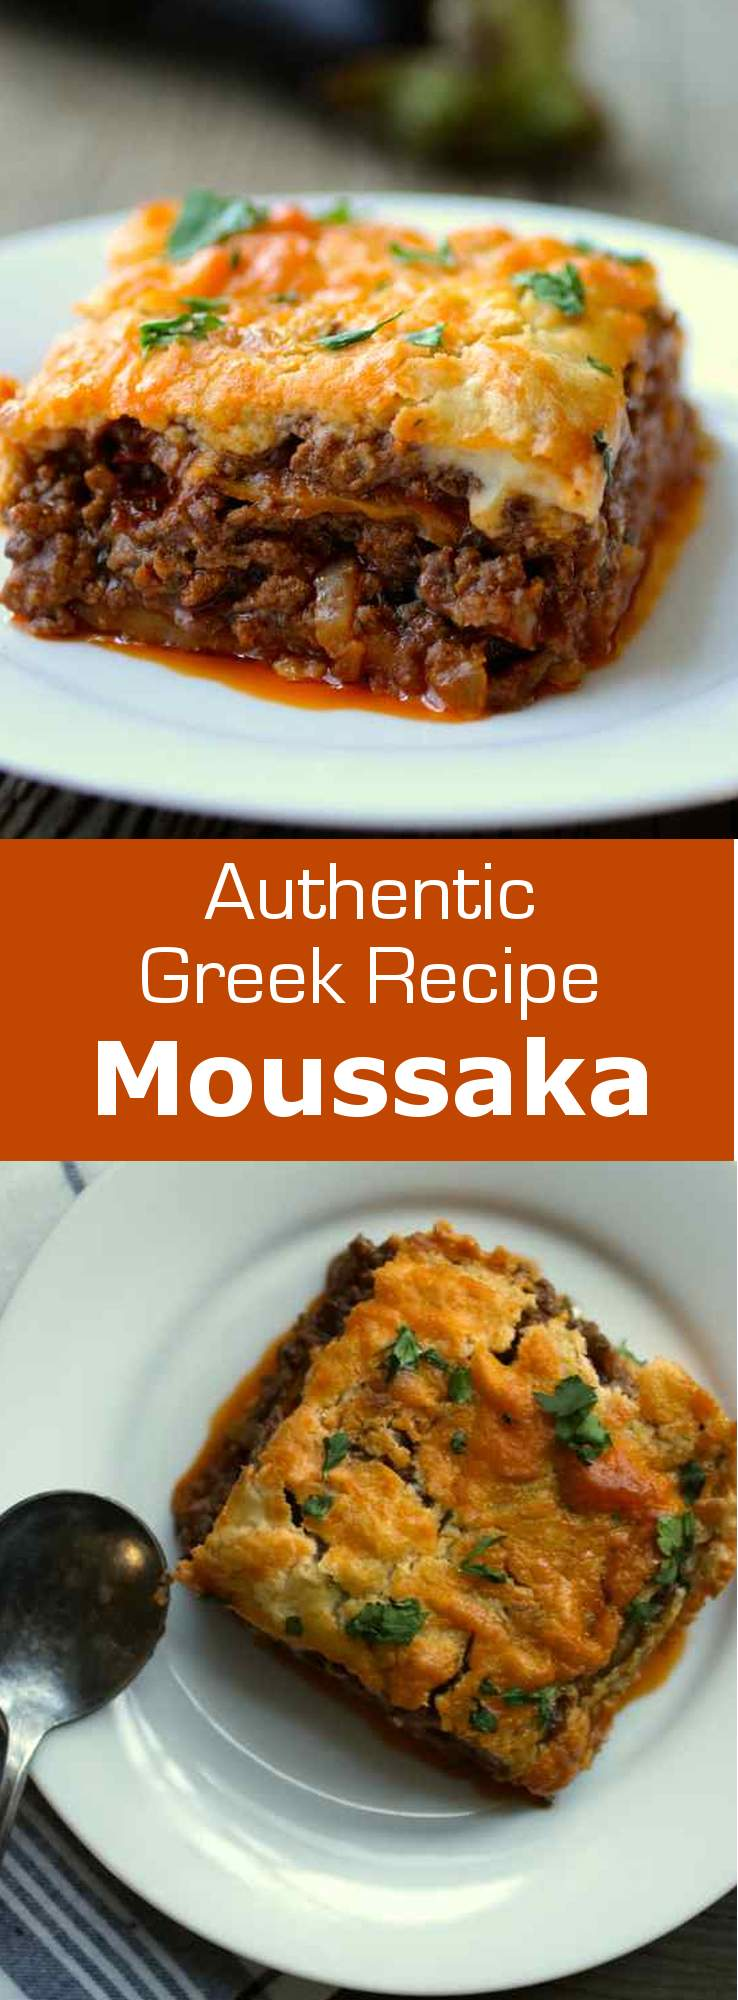 Moussaka traditional greek recipe 196 flavors moussaka is the iconic hearty greek dish composed of layers of eggplants saucy ground meat forumfinder